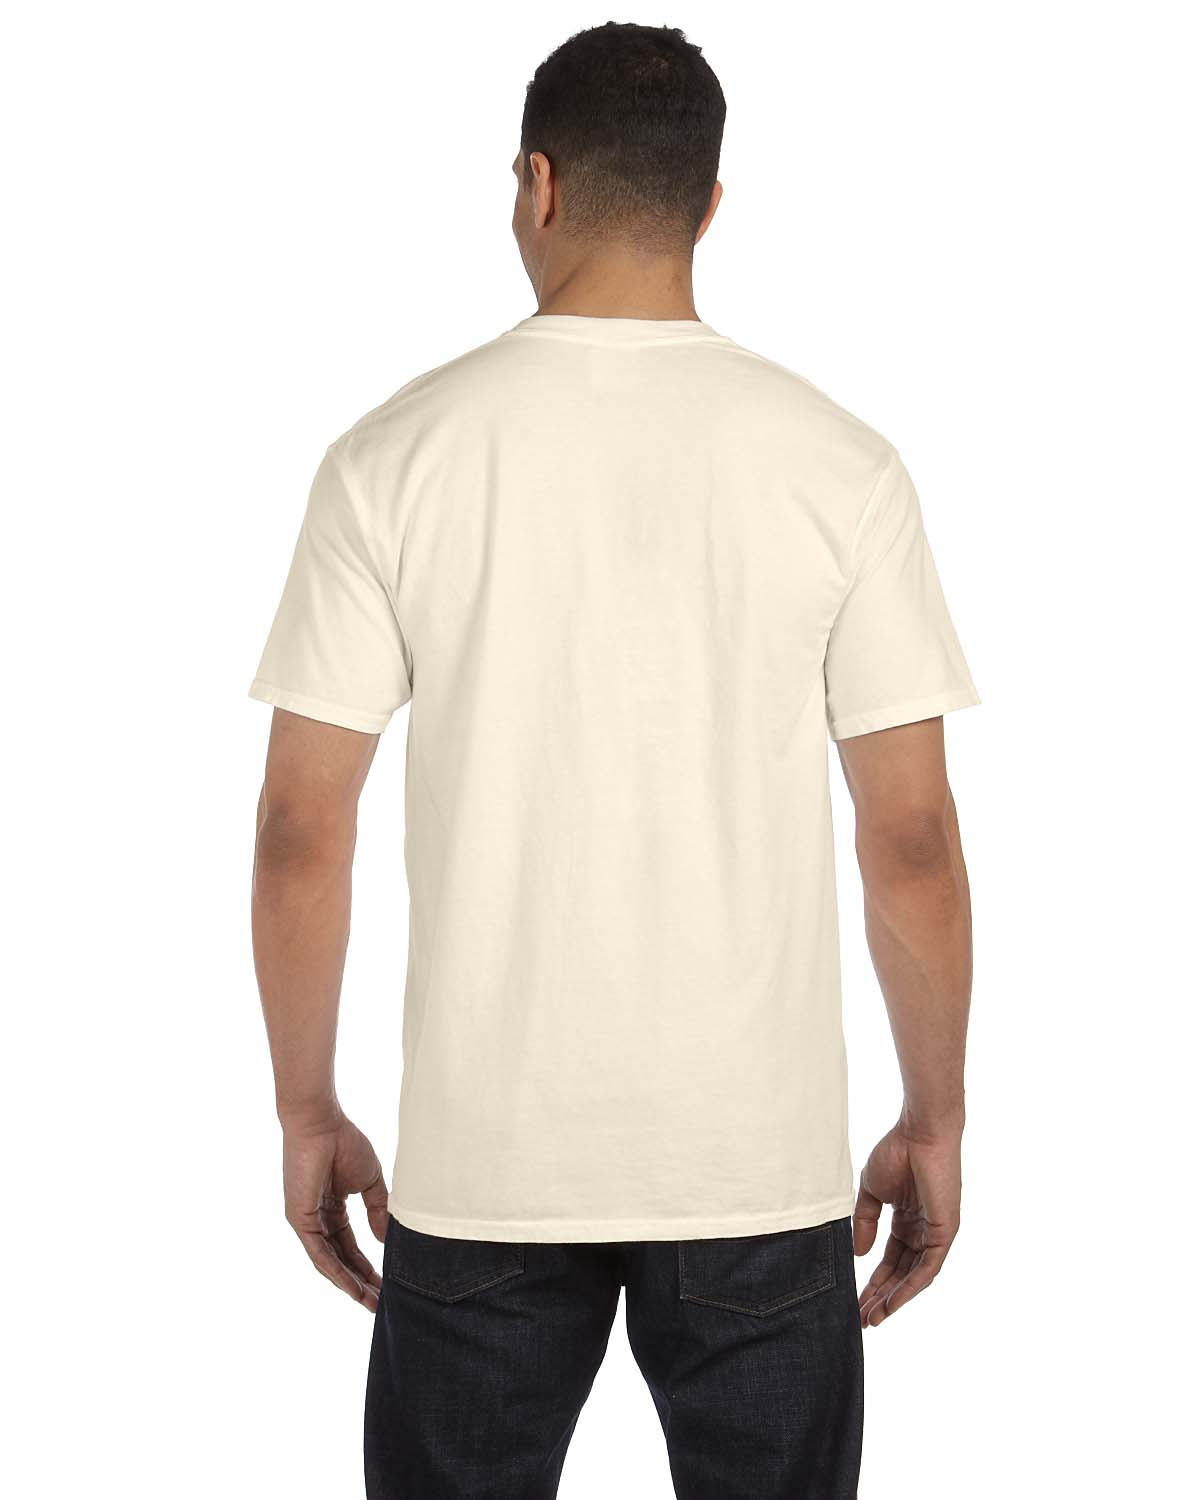 Comfort-Colors-Men-039-s-6-1-oz-Garment-Dyed-Pocket-T-Shirt-6030CC-S-3XL thumbnail 49